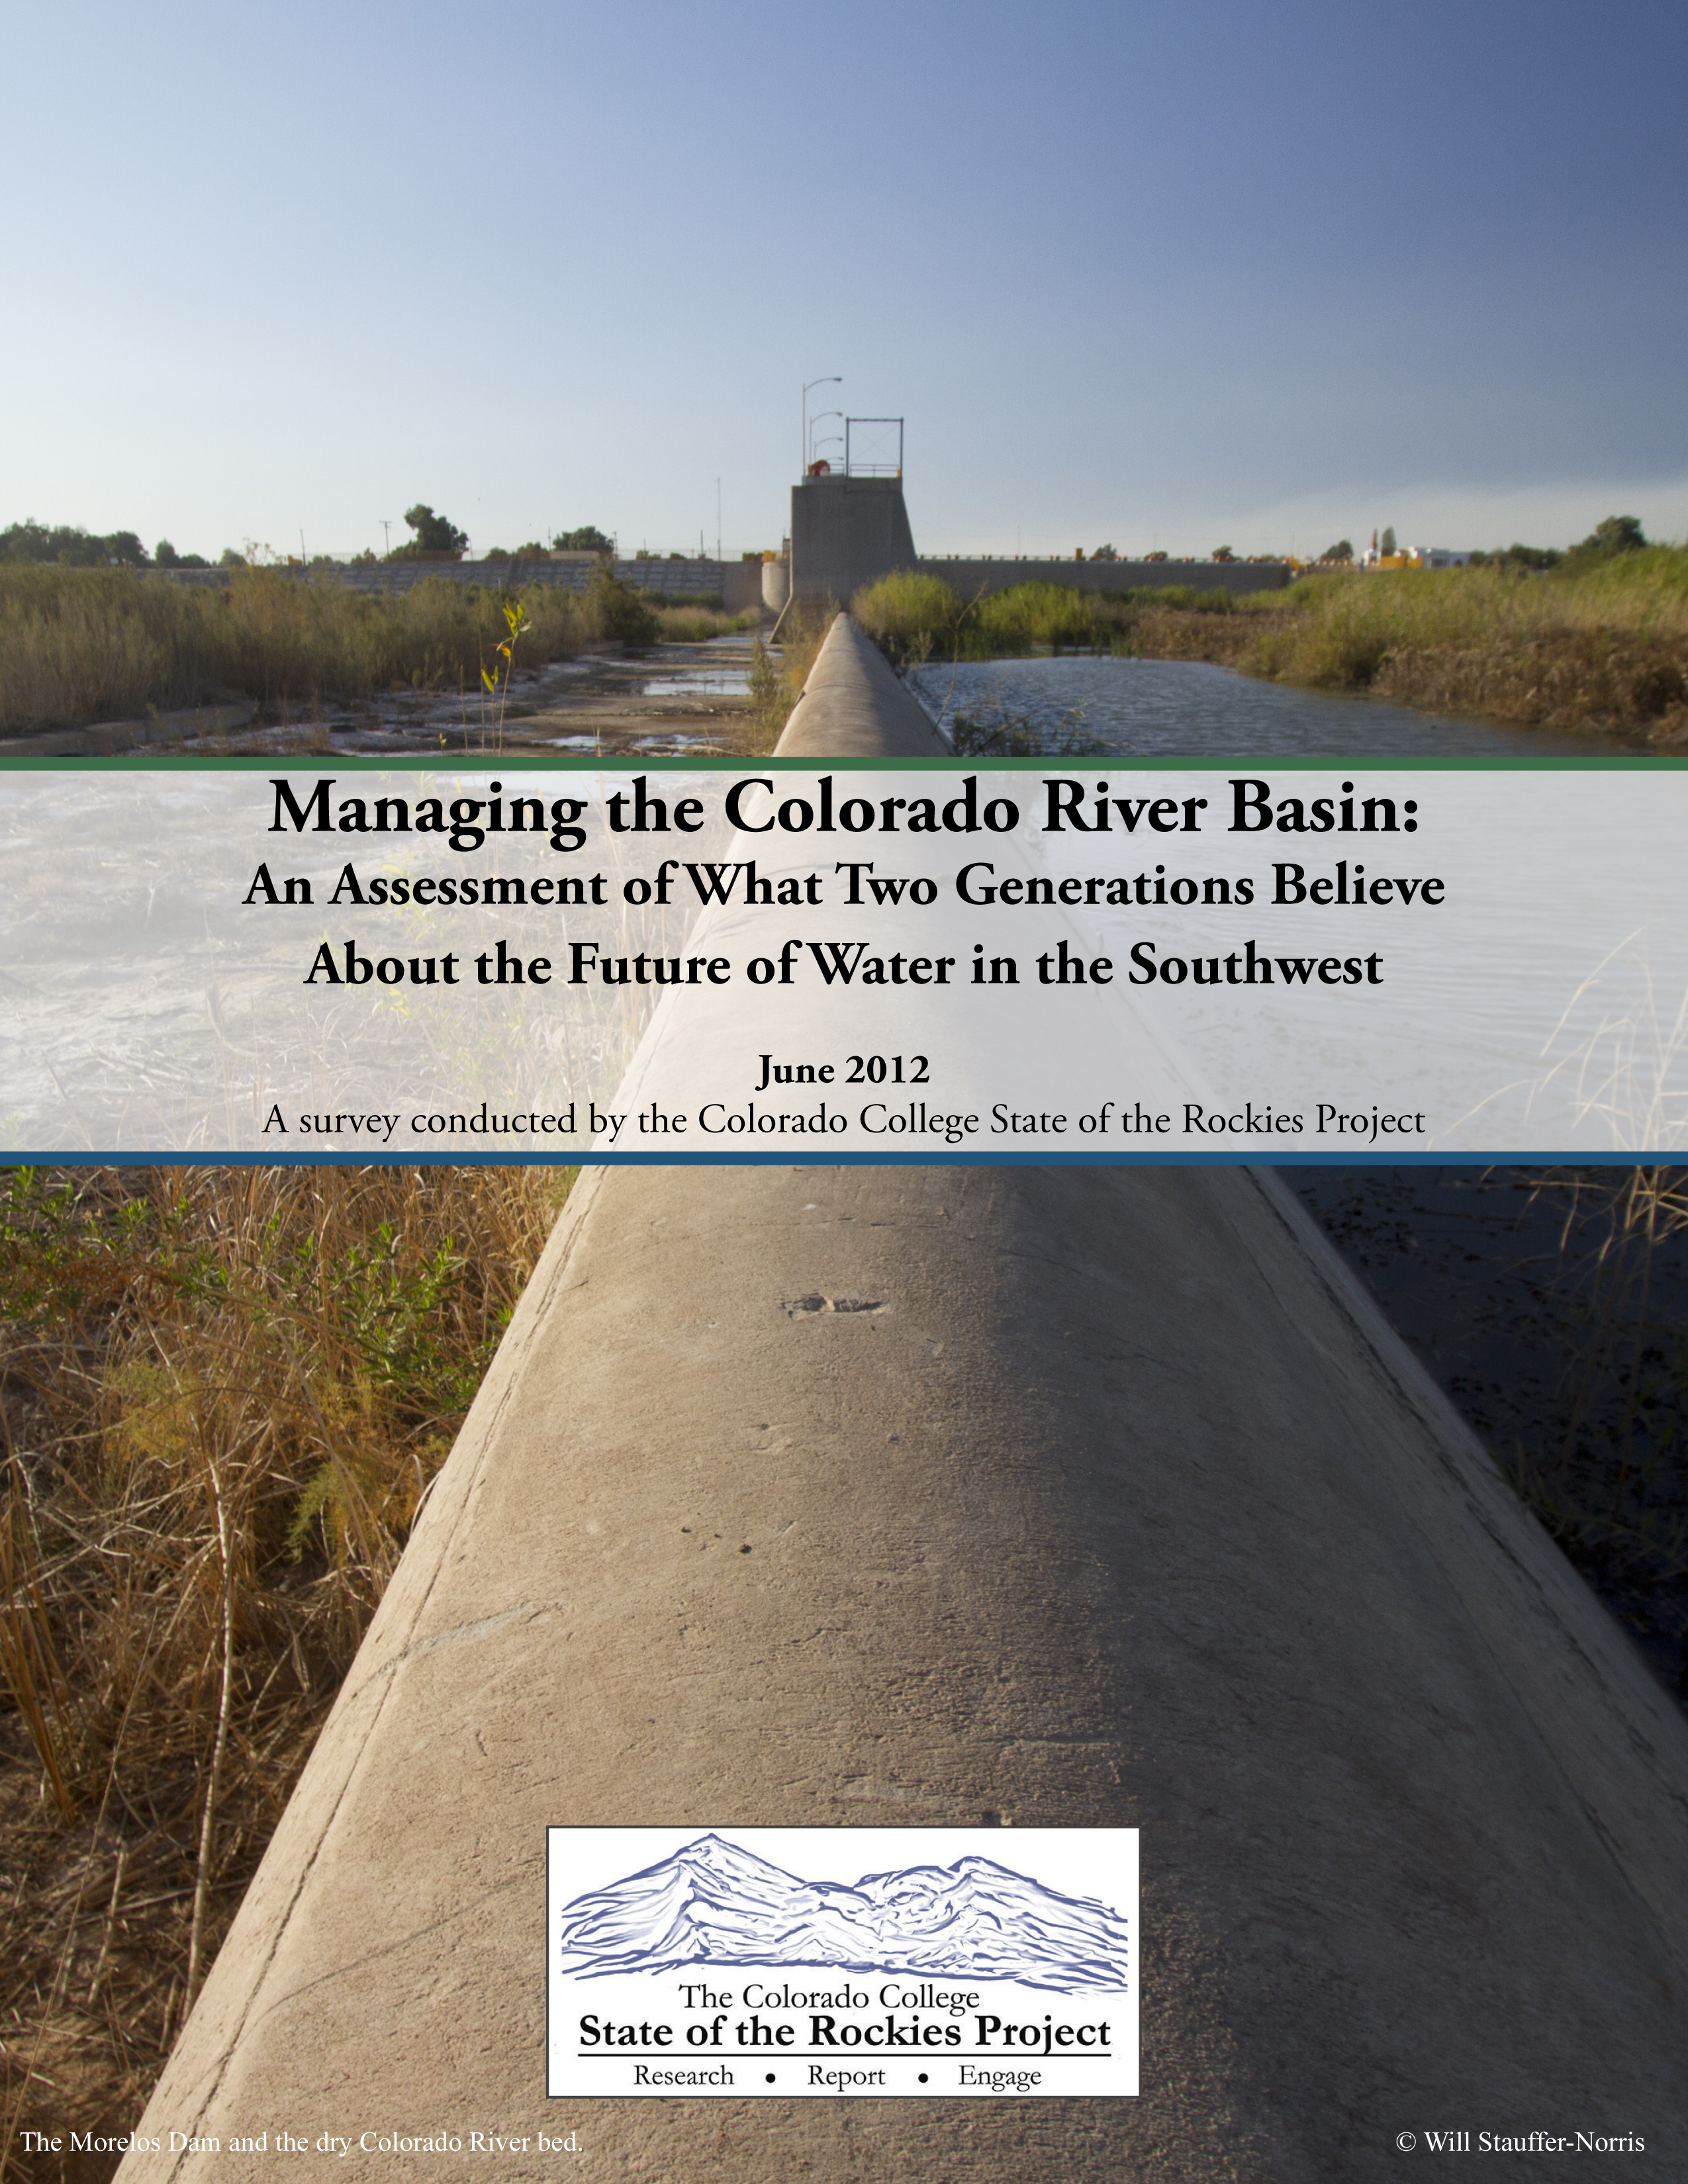 Managing the Colorado River Basin Survey